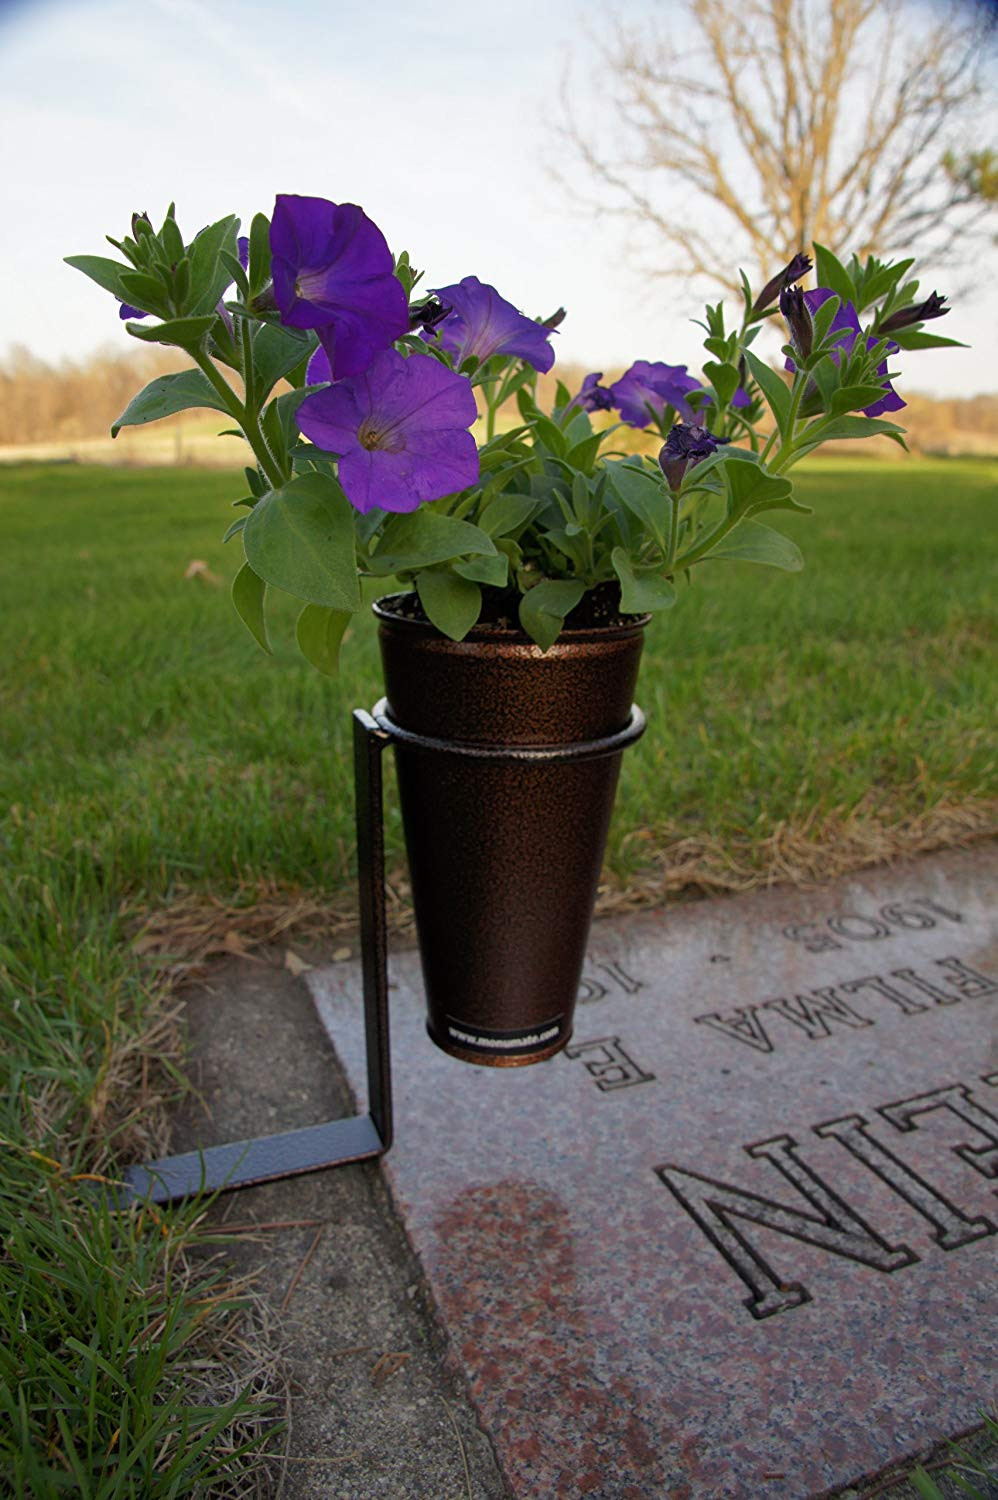 personalised grave vase of stay in the vase cemetery flowers inside 81duqigkvil sl1500